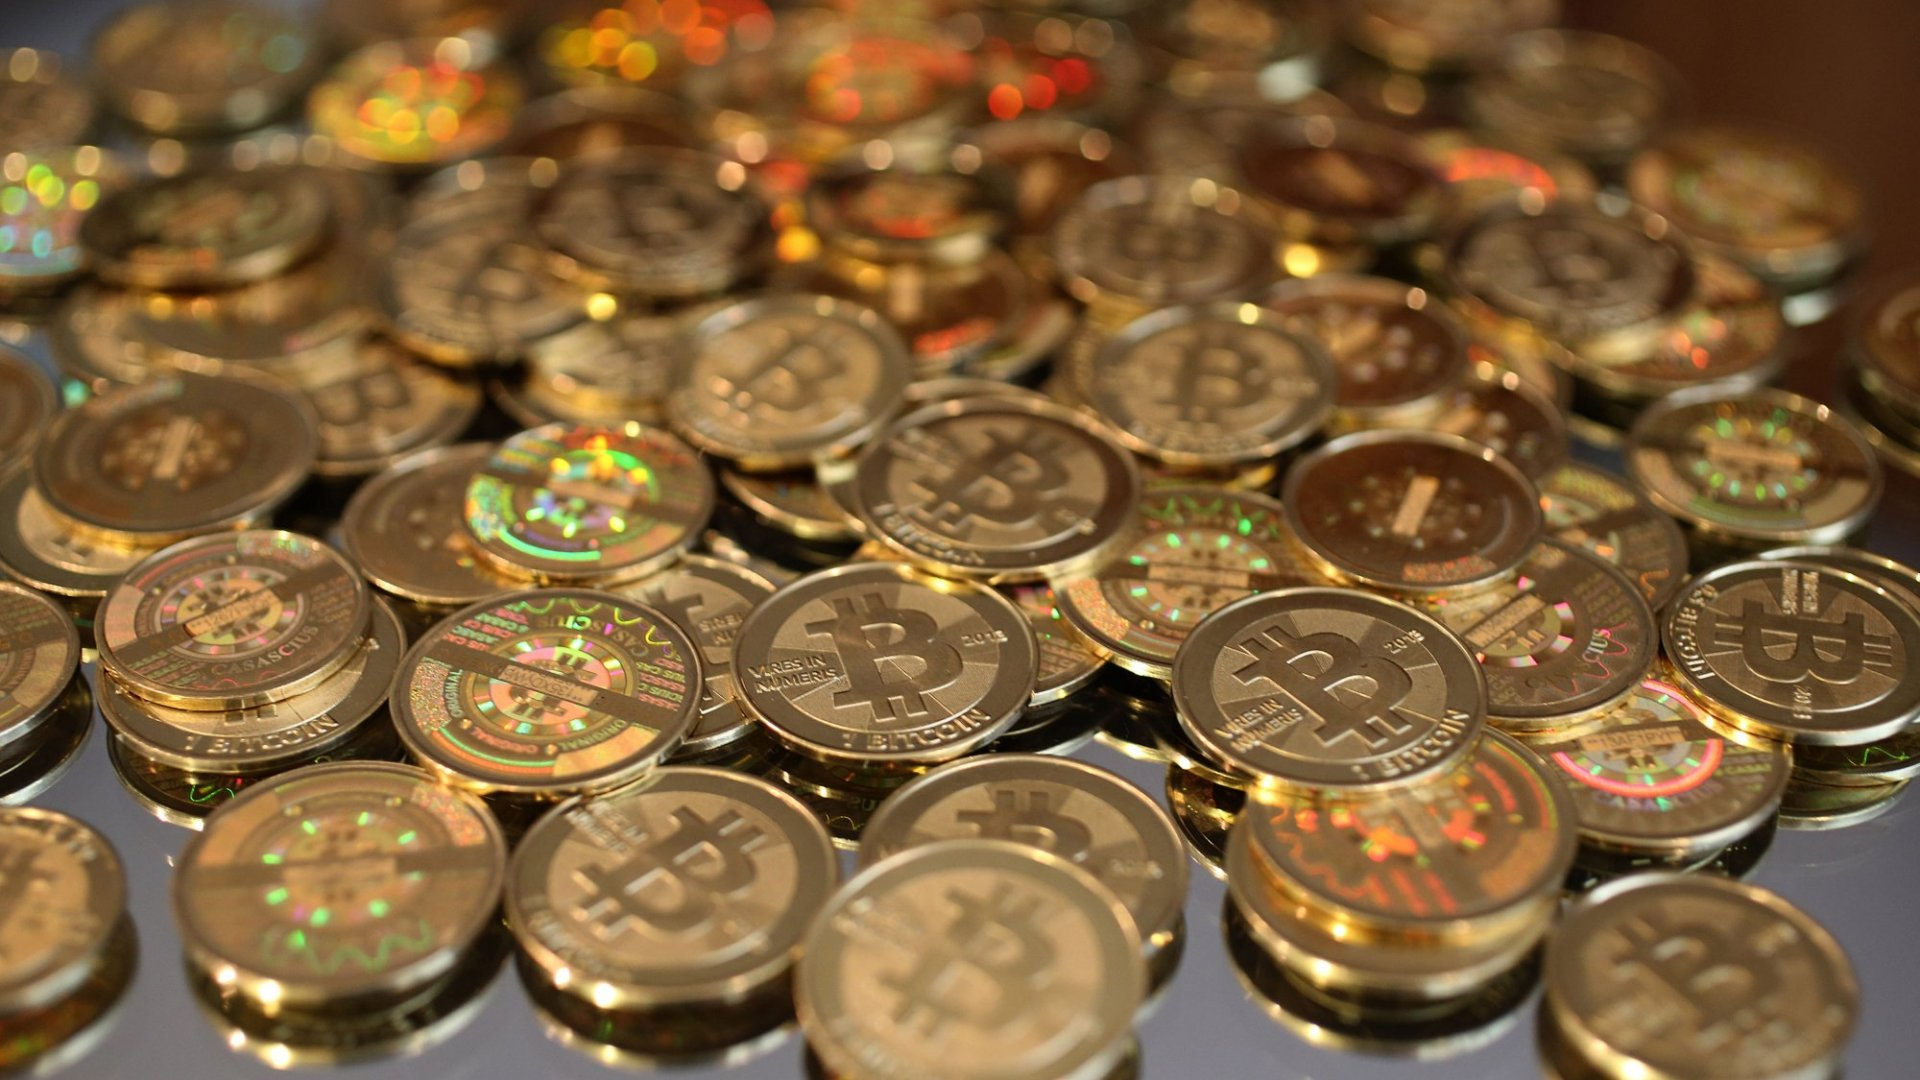 Federal Agents Accused of Stealing $1 Million in Bitcoin